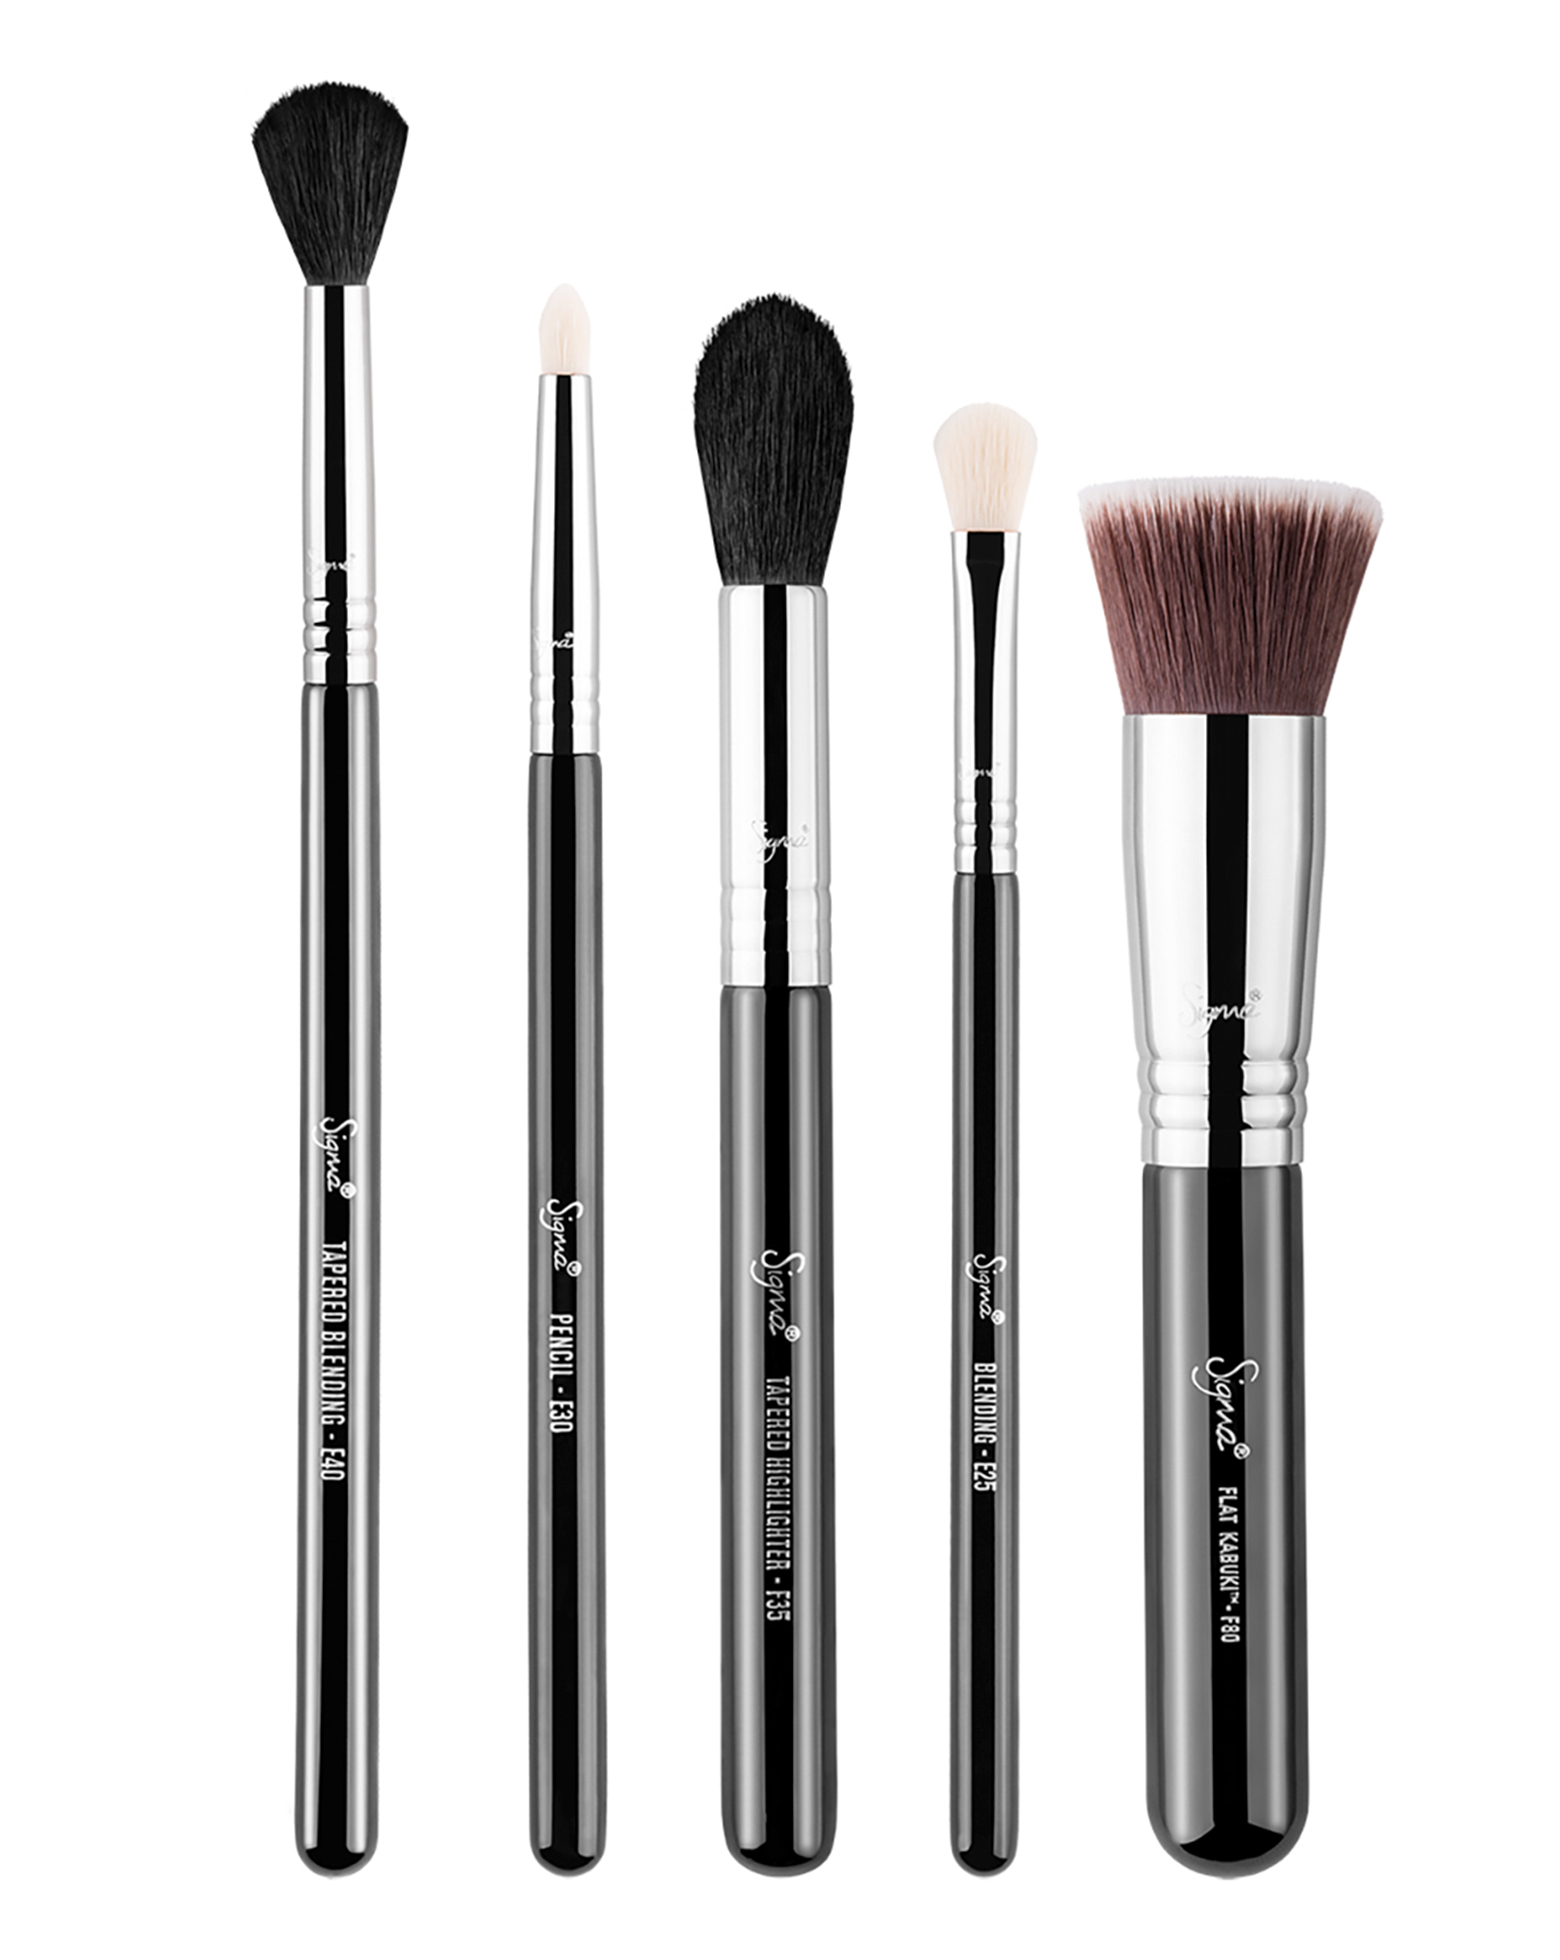 Sigma Beauty Best Of Sigma Beauty Brush Kit 122 Value: The Most Wanted Brush Set